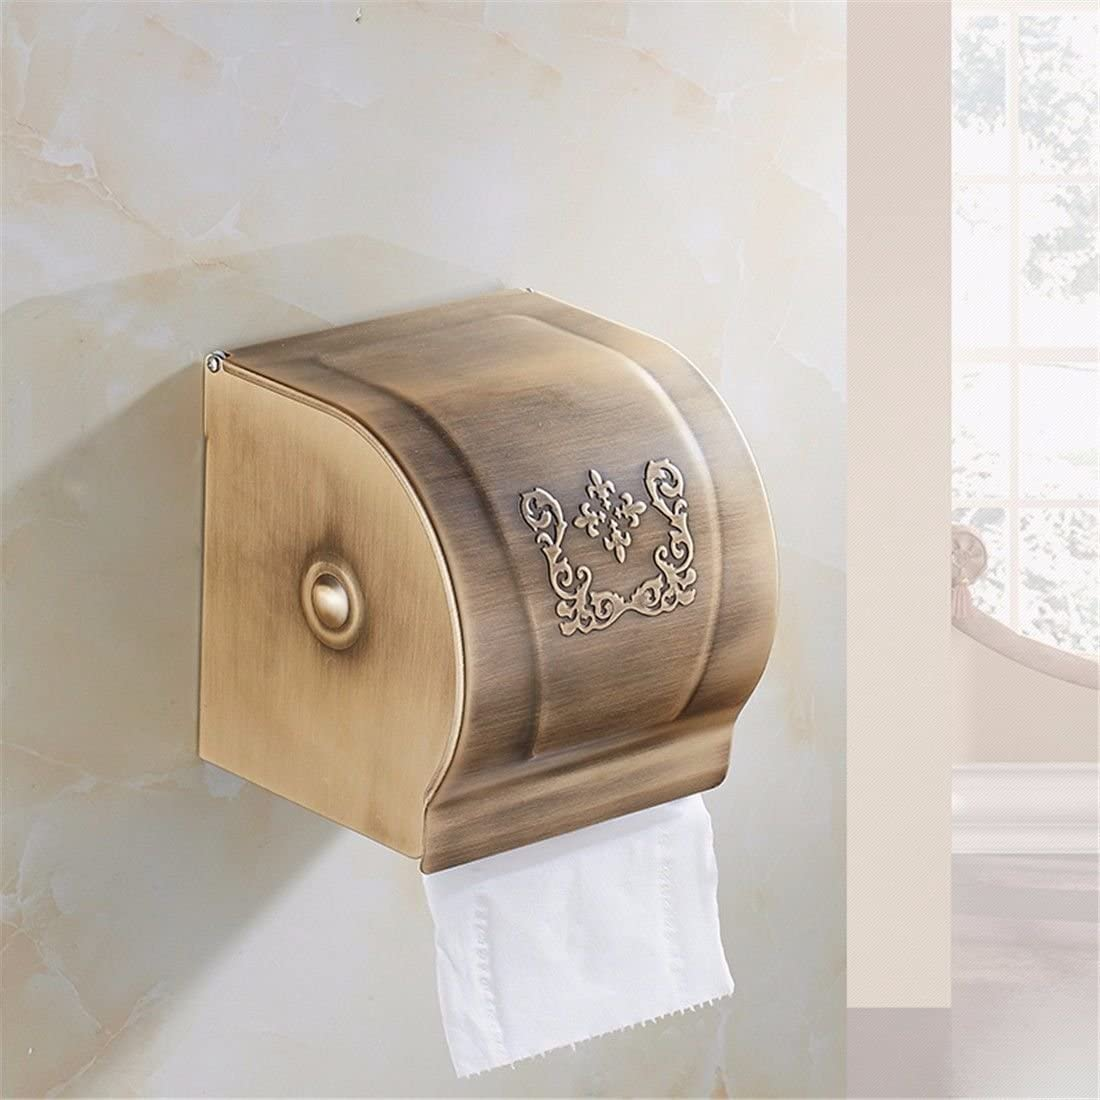 AiRobin-Continental Antique Space Aluminum Wall Mounted Toilet Paper Storage Container Bathroom Accessory